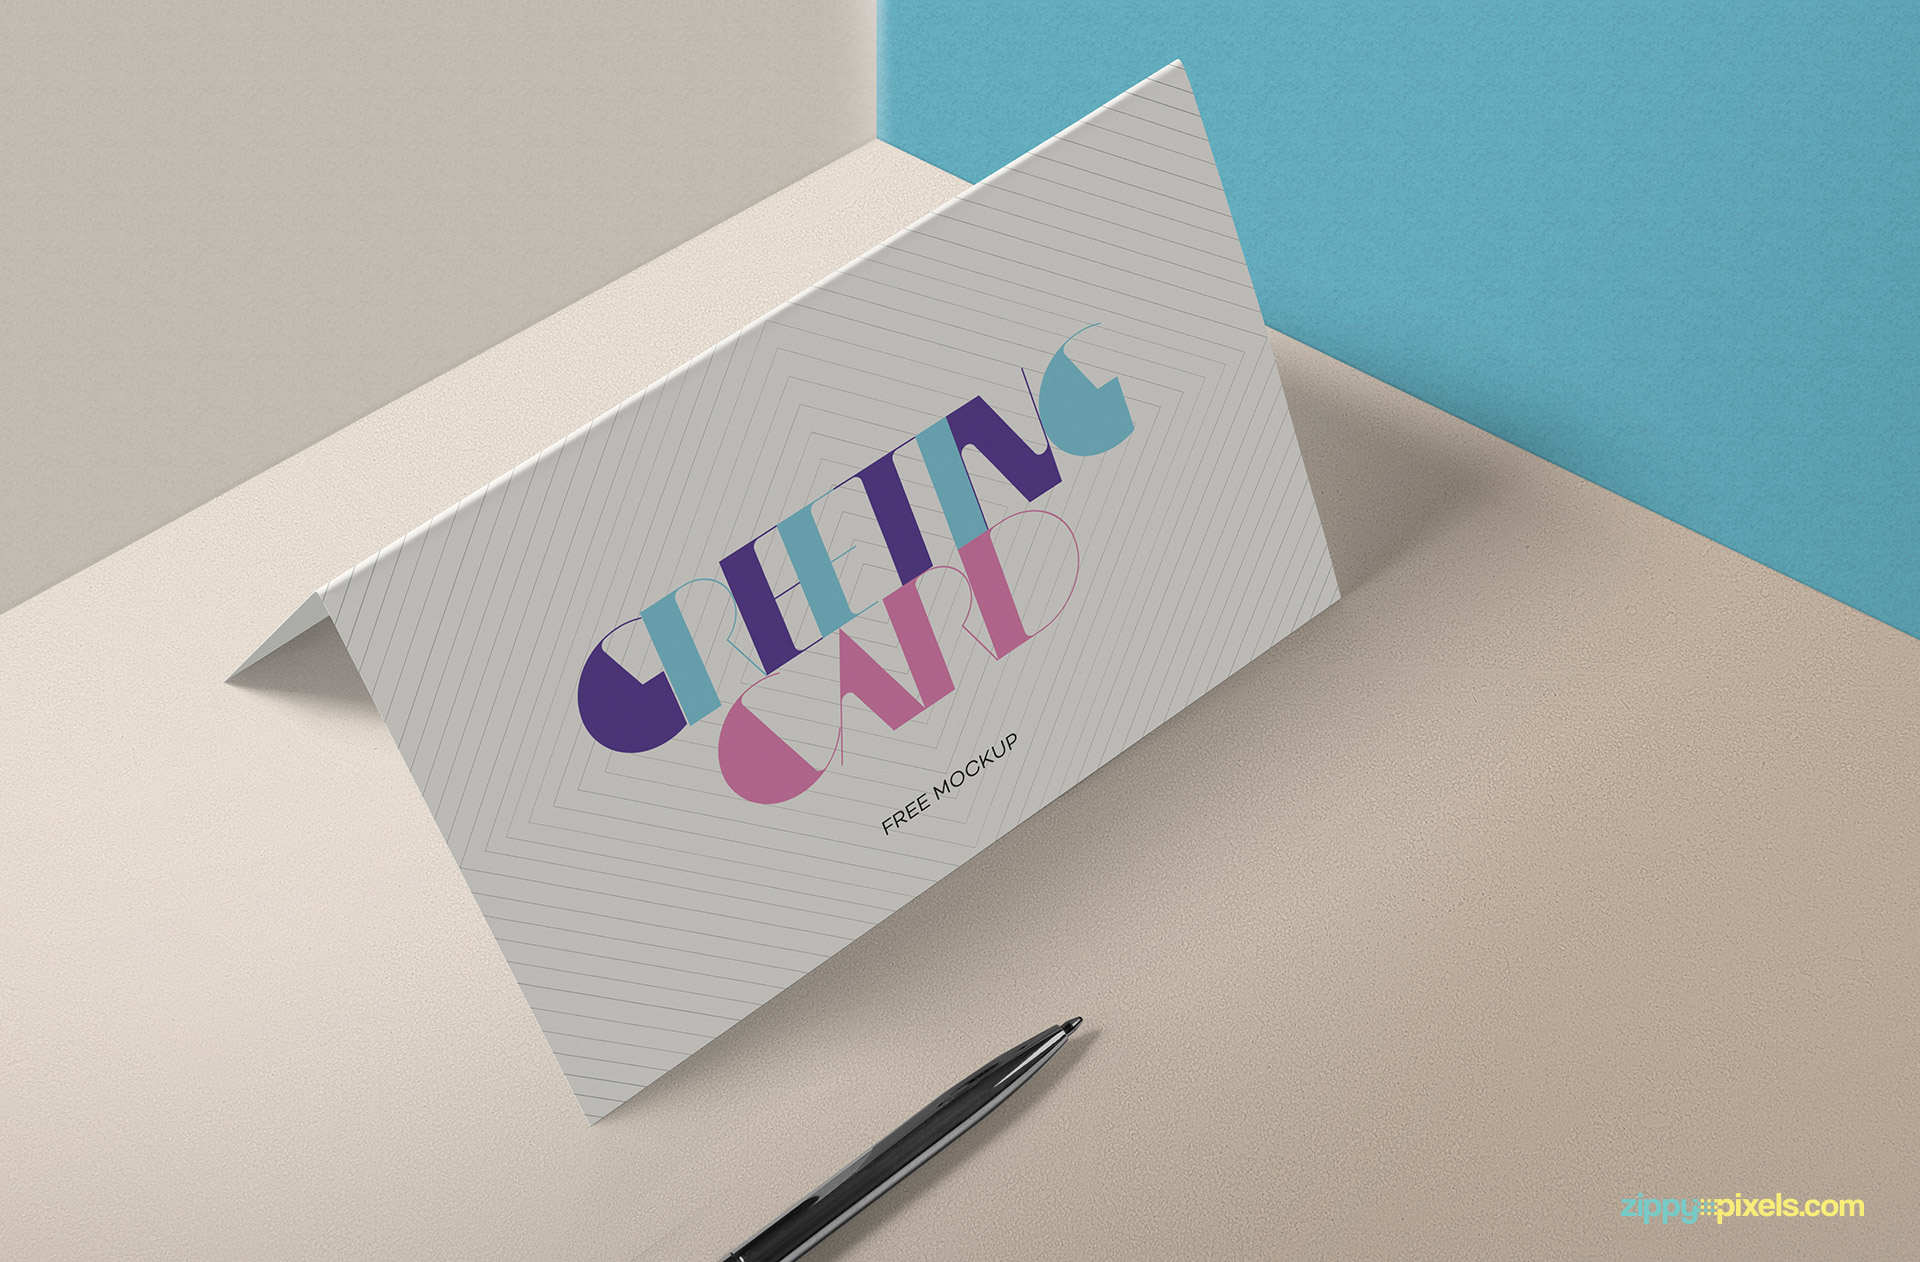 Fully customizable free invitation card mockup.